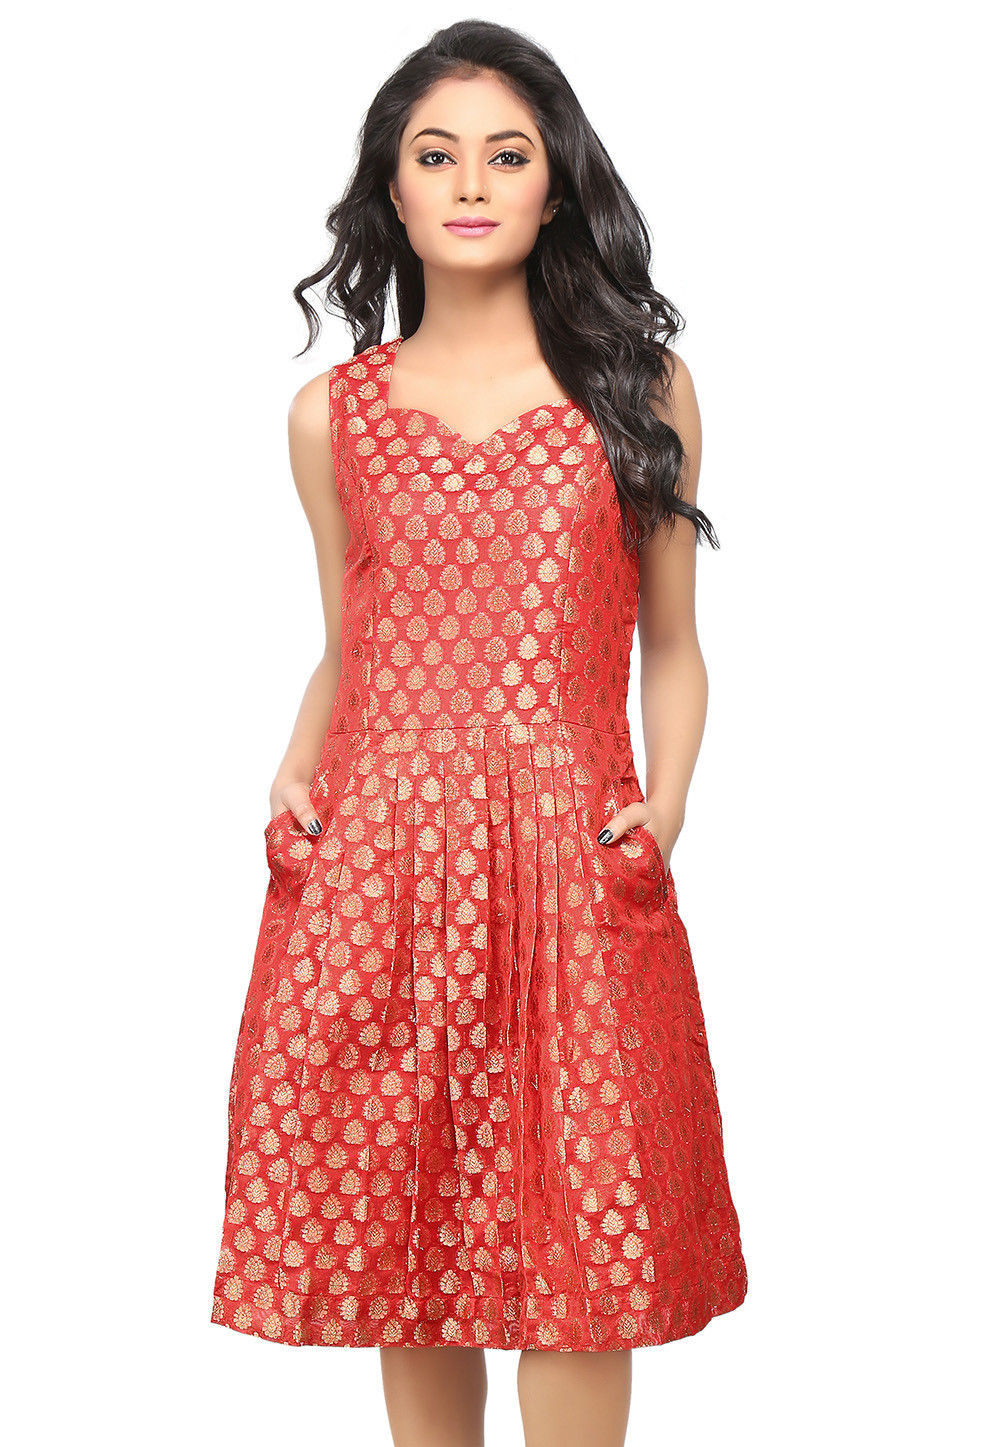 Jacquard Chanderi Silk Jacquard A Line Dress in Red